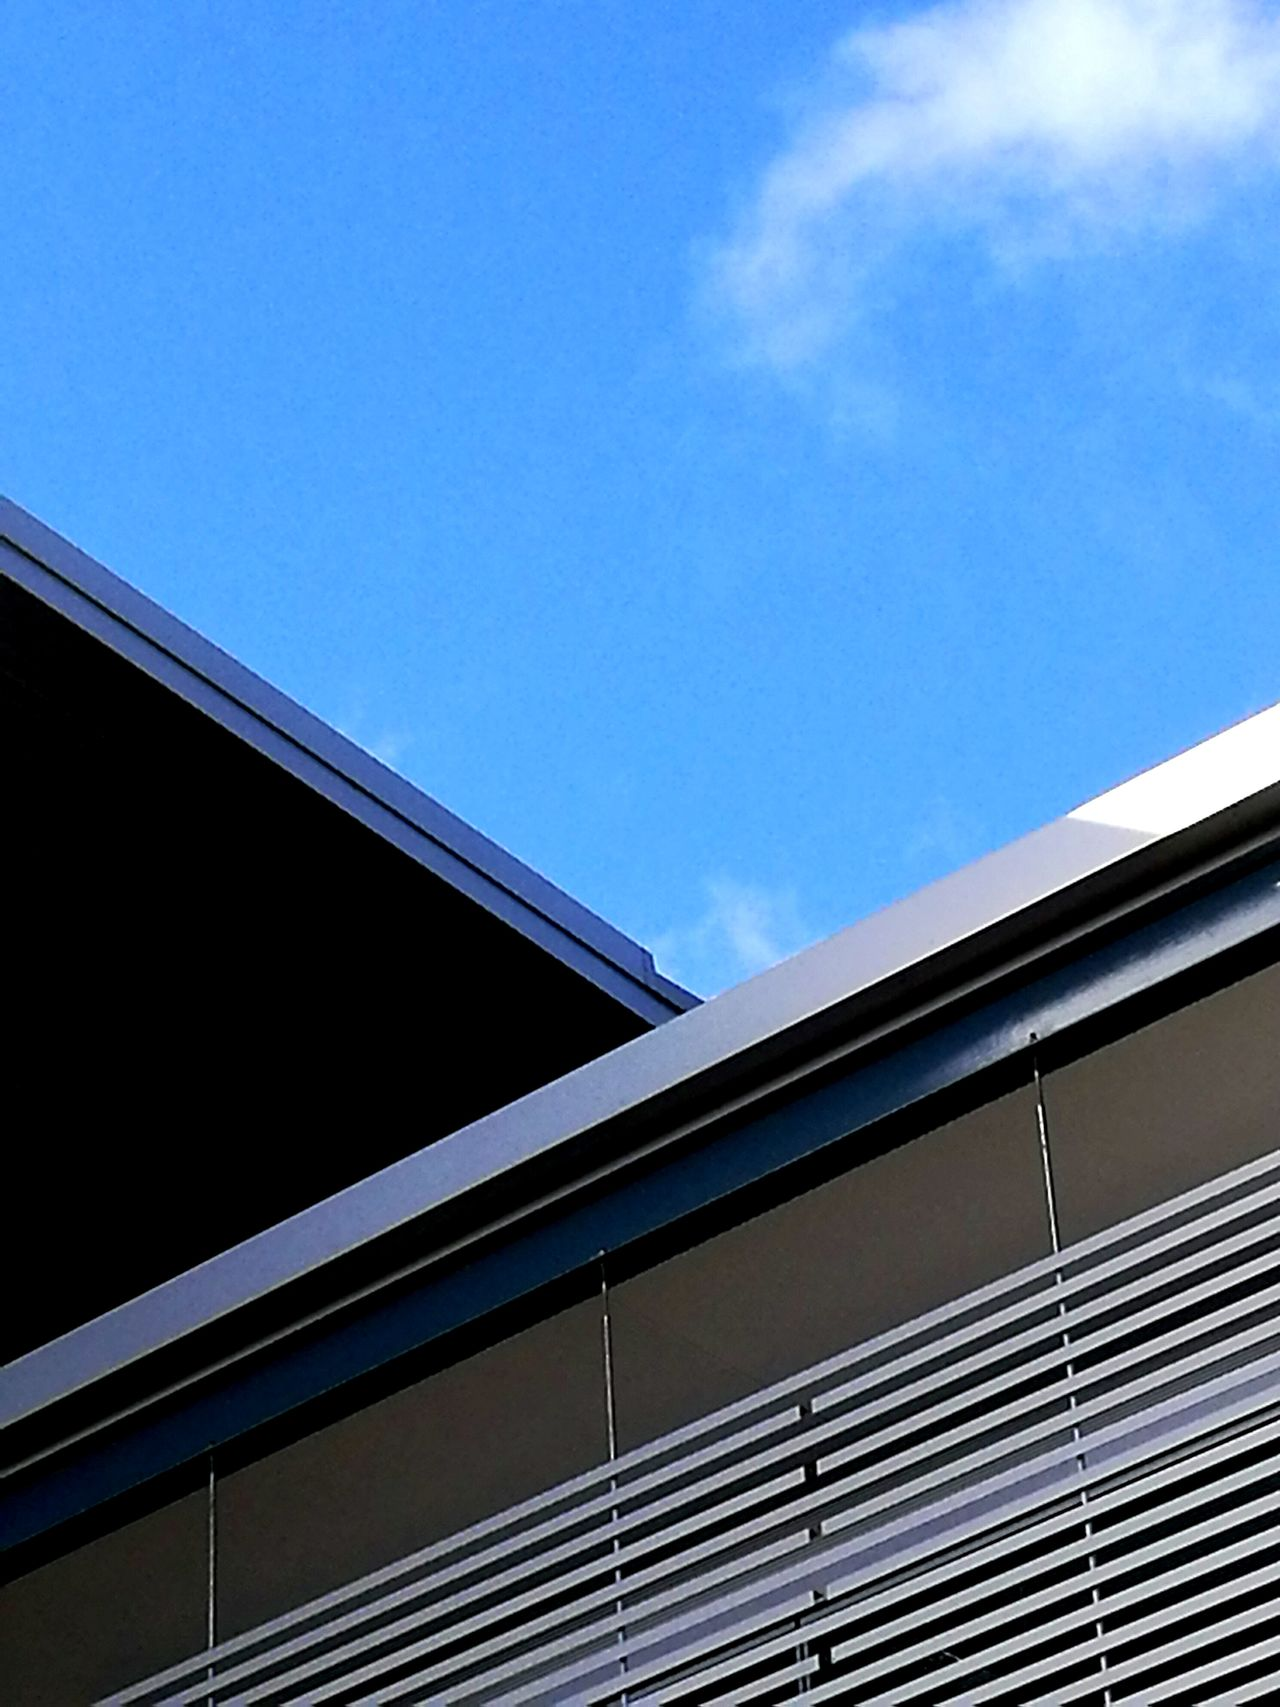 Clean simple architectural linesAdapted To The City EyeEm Best Shots The Week On EyeEem Architecture Low Angle View Outdoors Ladyphotographerofthemonth Clear Sky Built Structure Building Exterior Fine Art Photograhy Minimalistic At The Whangarei Library Forum North